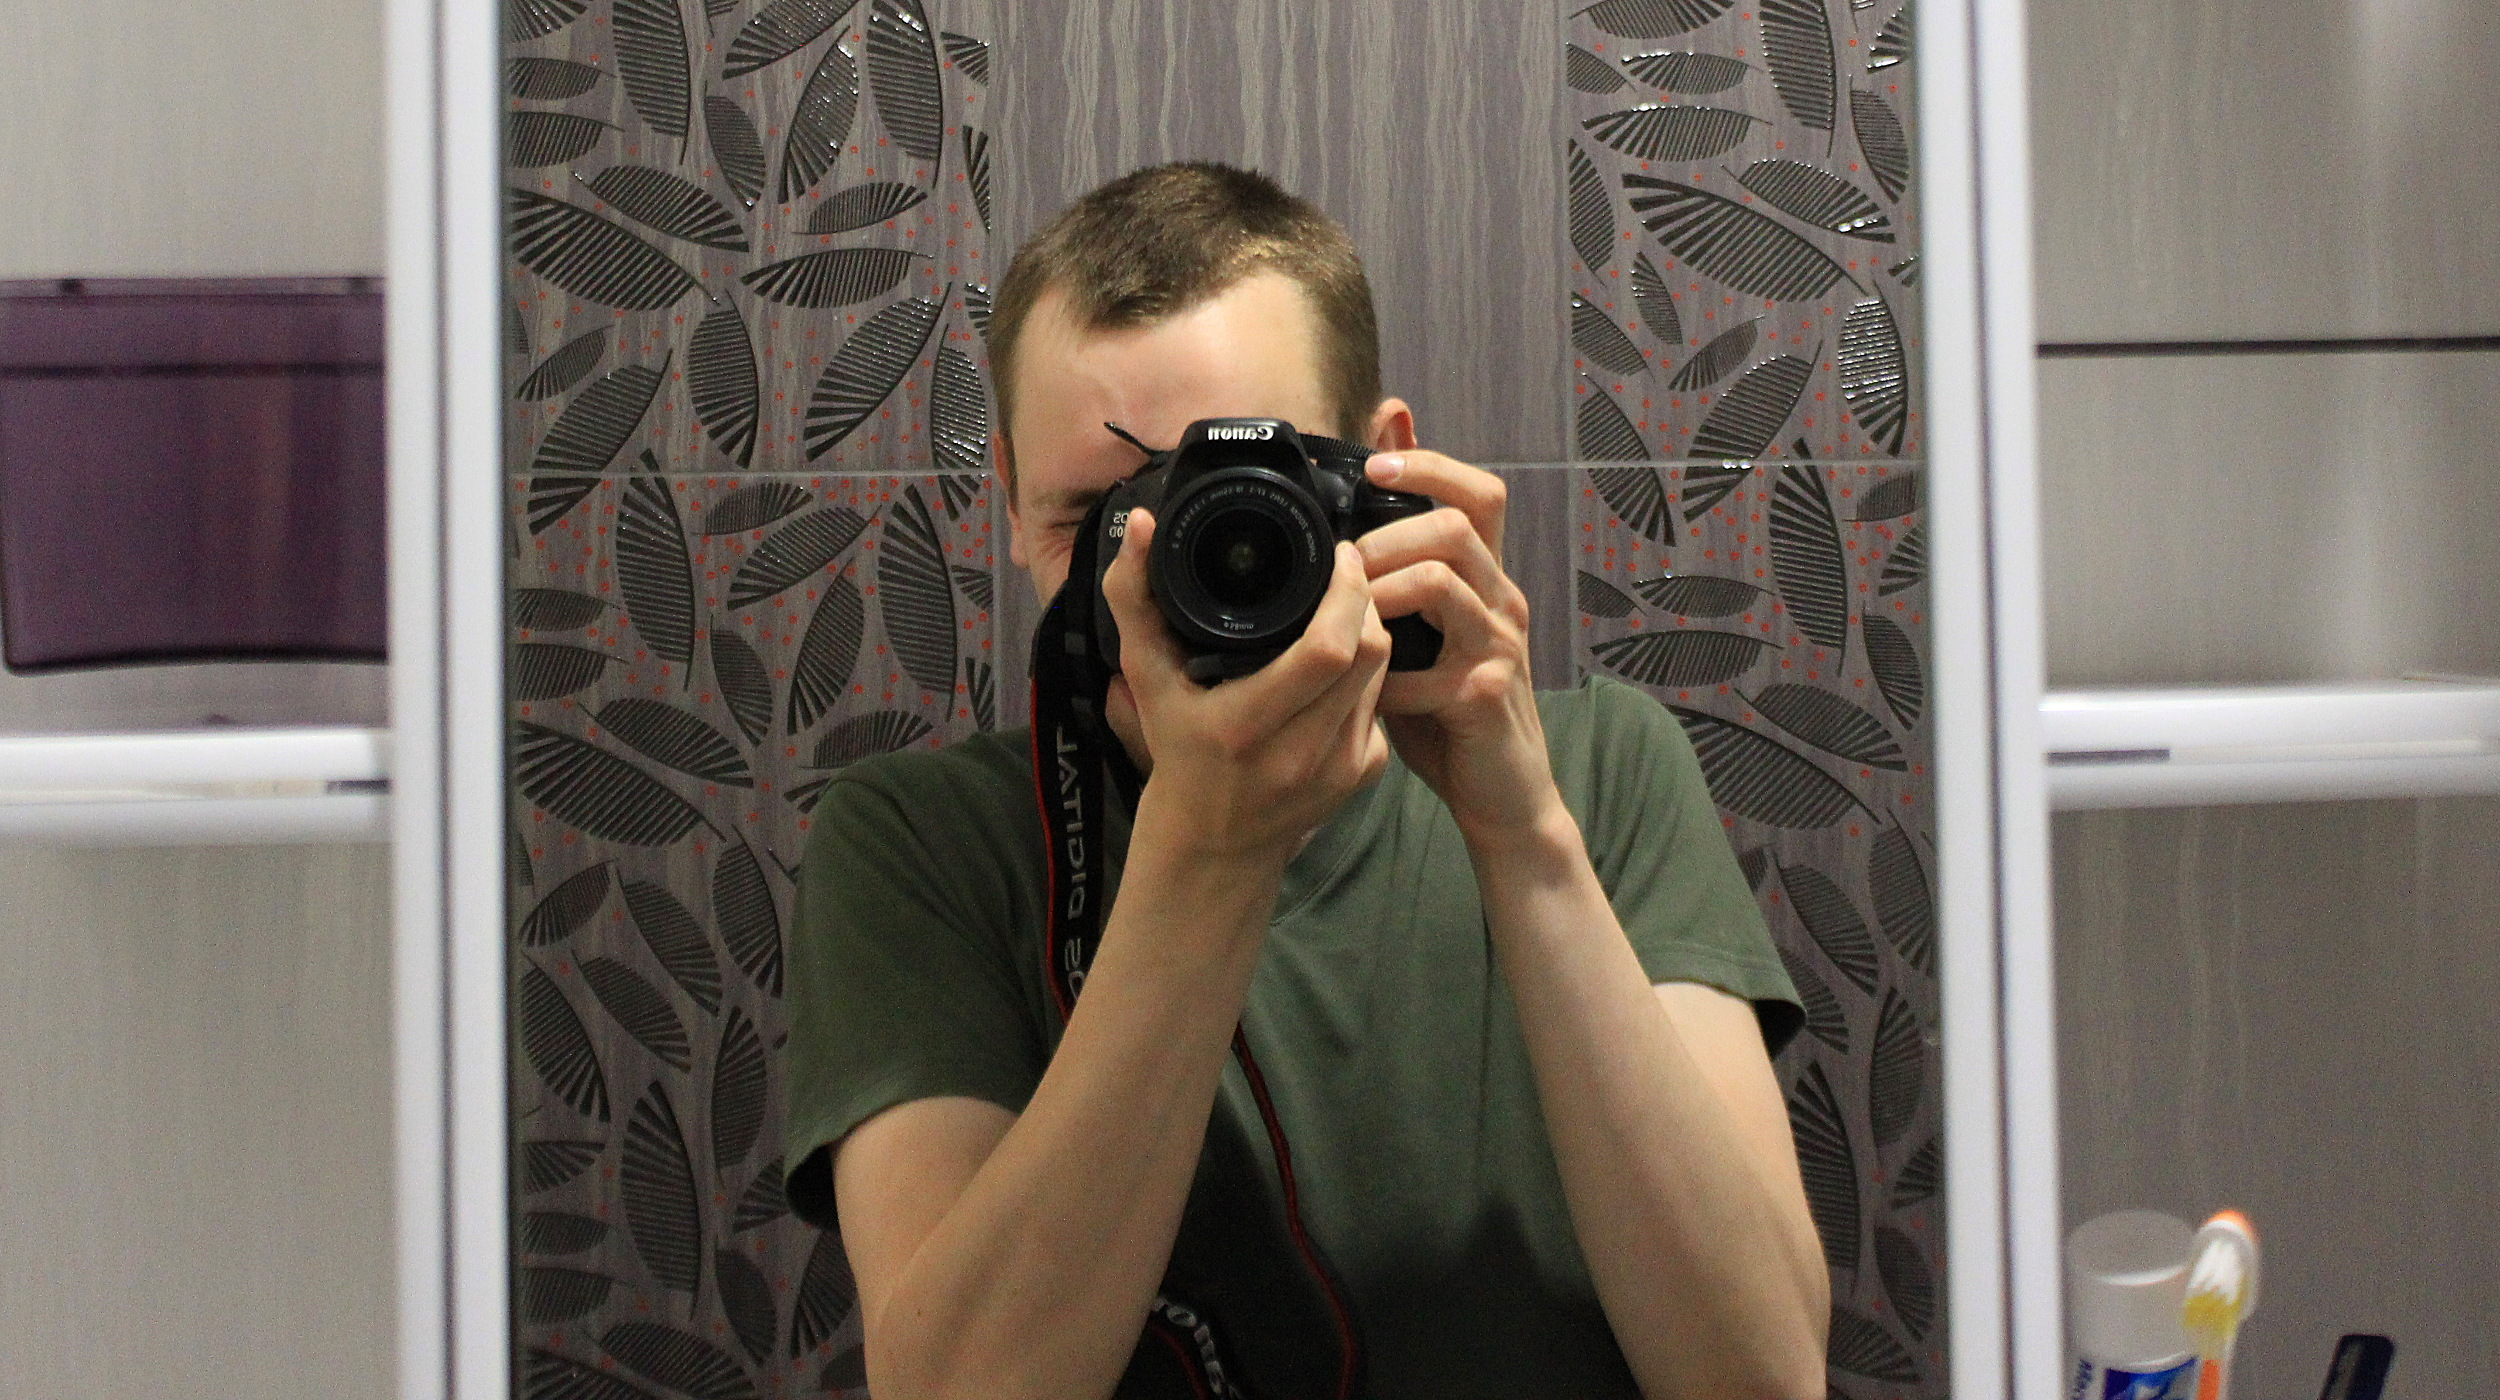 A bathroom mirror selfie with a Canon 600D.